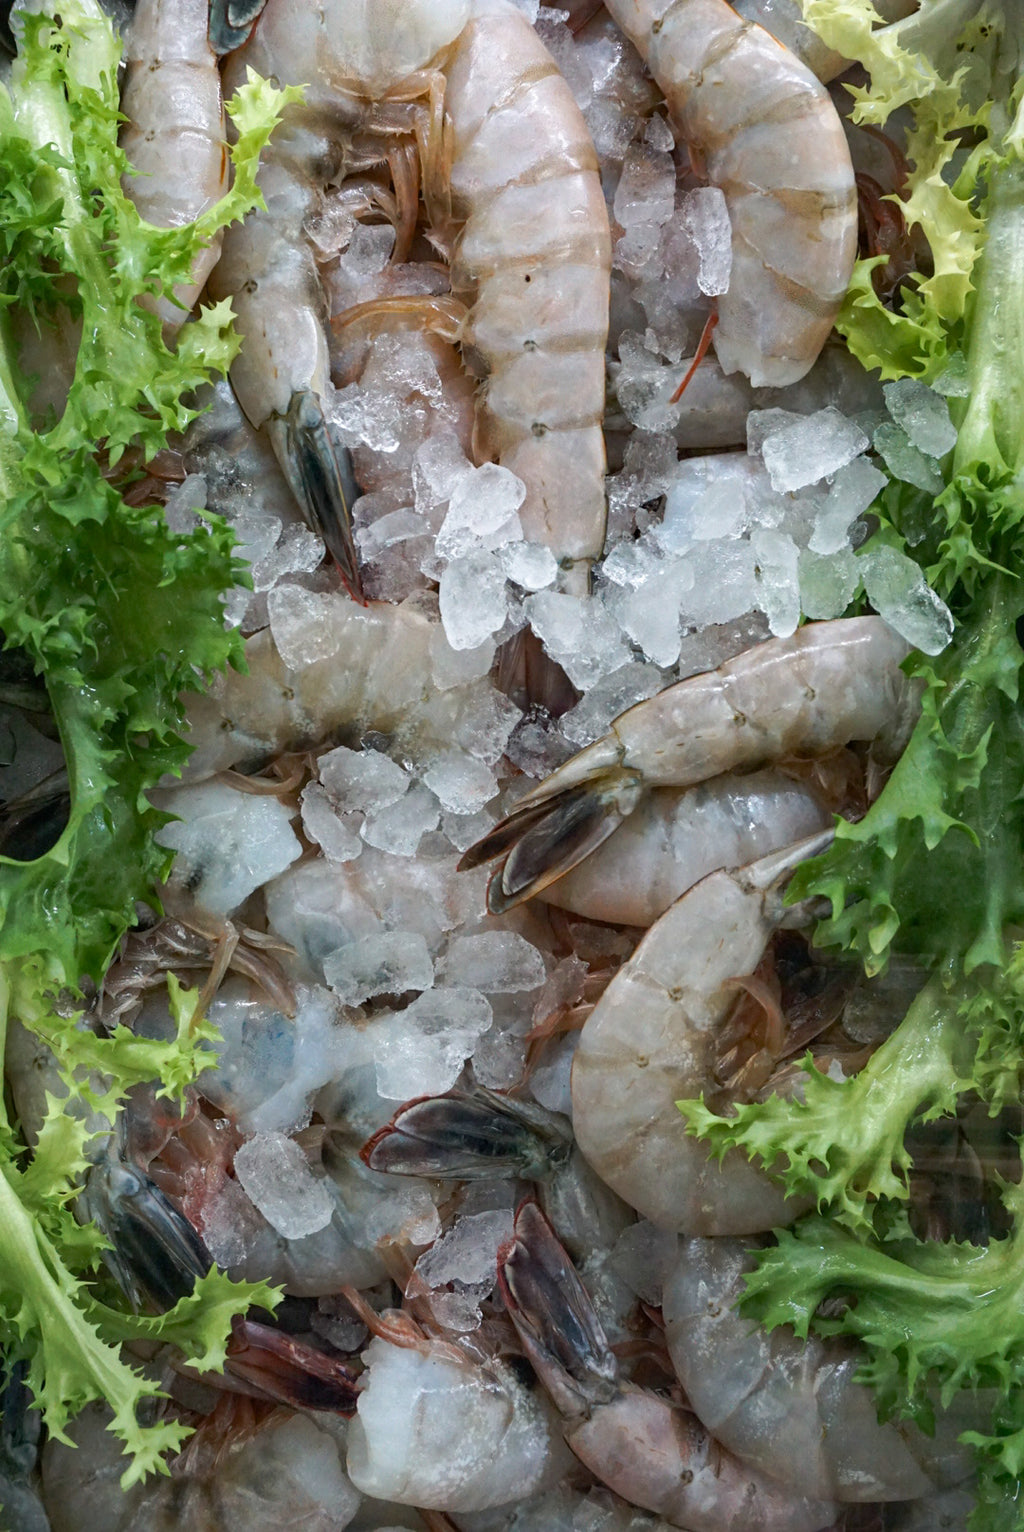 Large Shrimp (Peeled and Deveined)